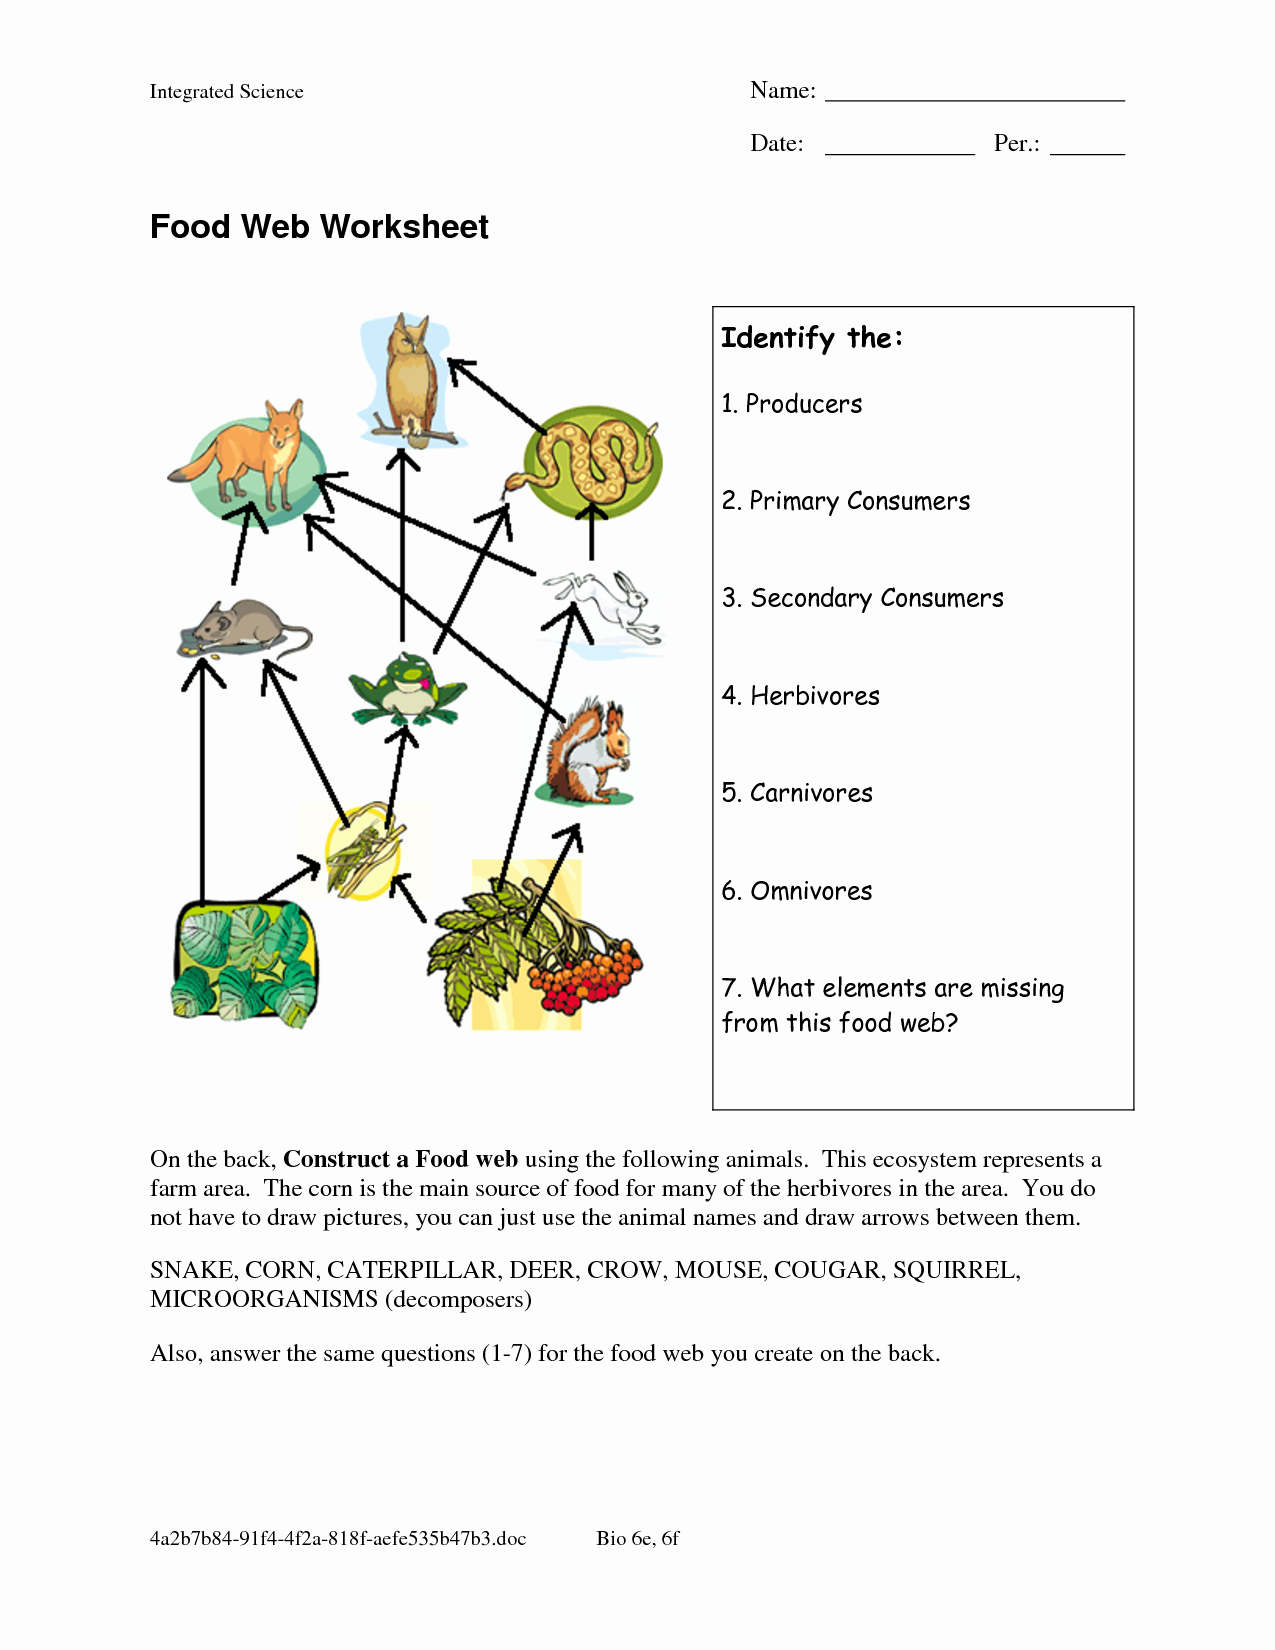 Food Web Worksheet Pdf Best Of Food Web Worksheets